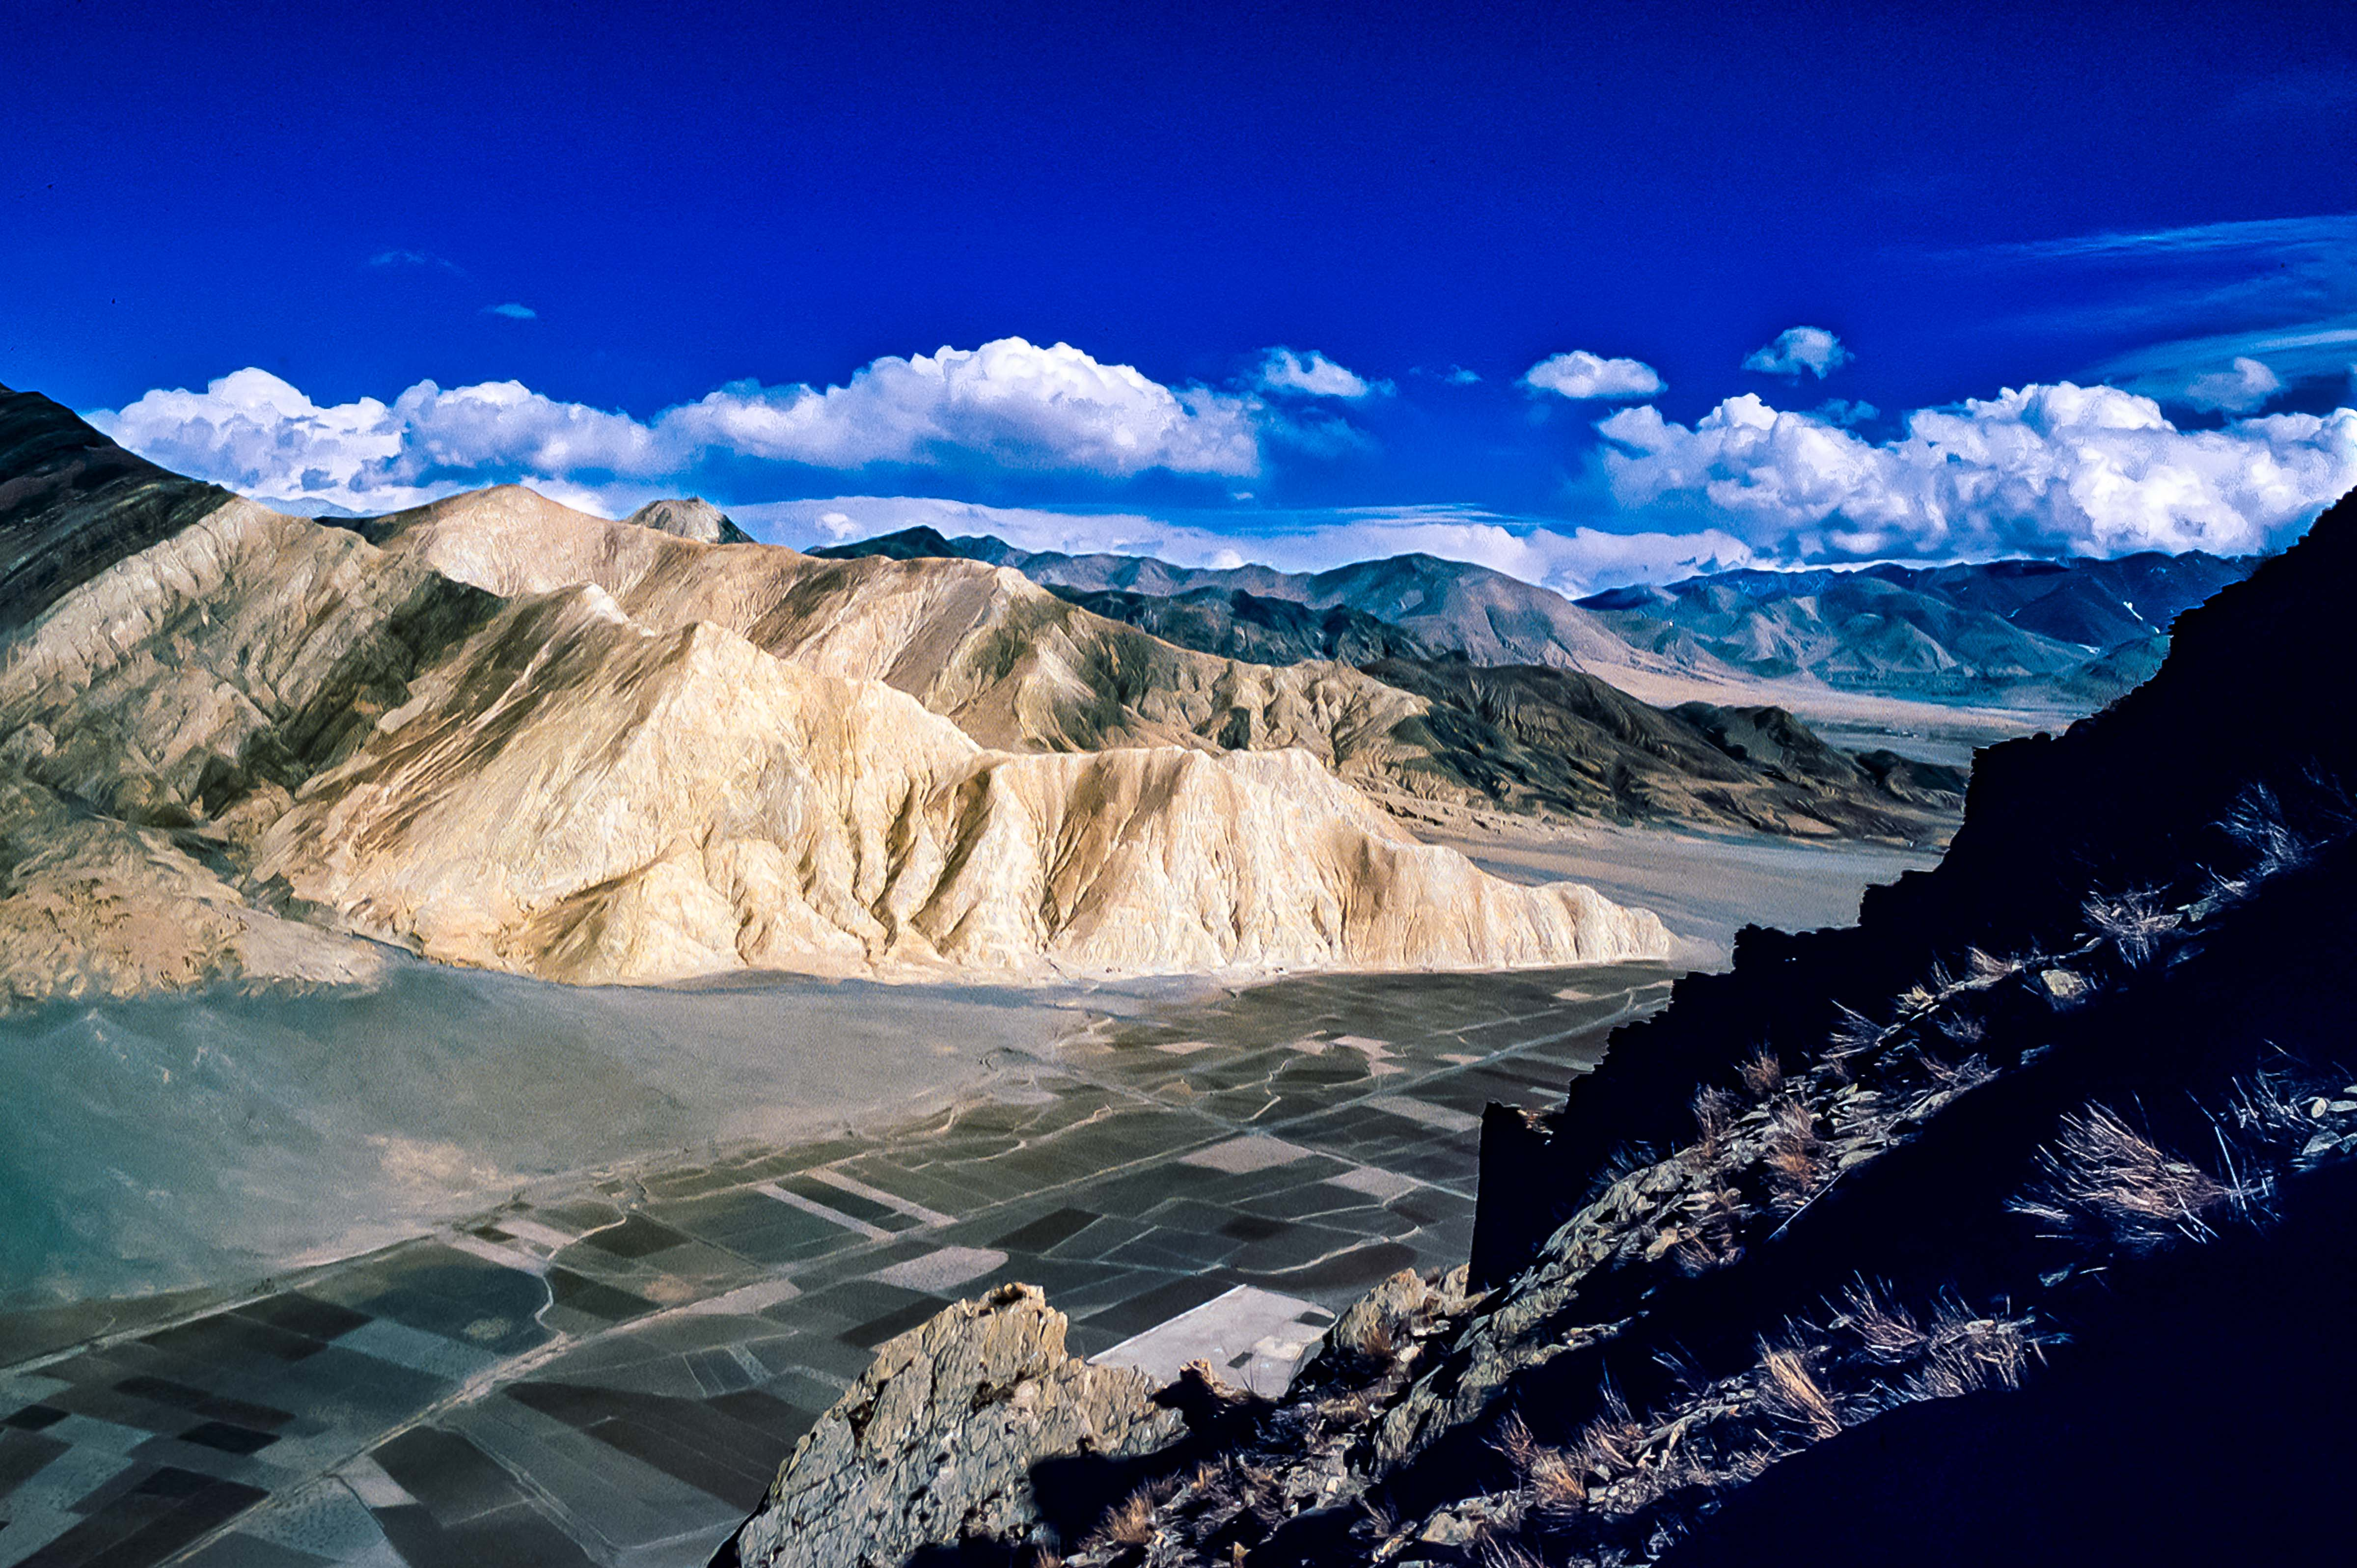 Tibet, Xegar, View Of Valley From Top Of Hill, 1995